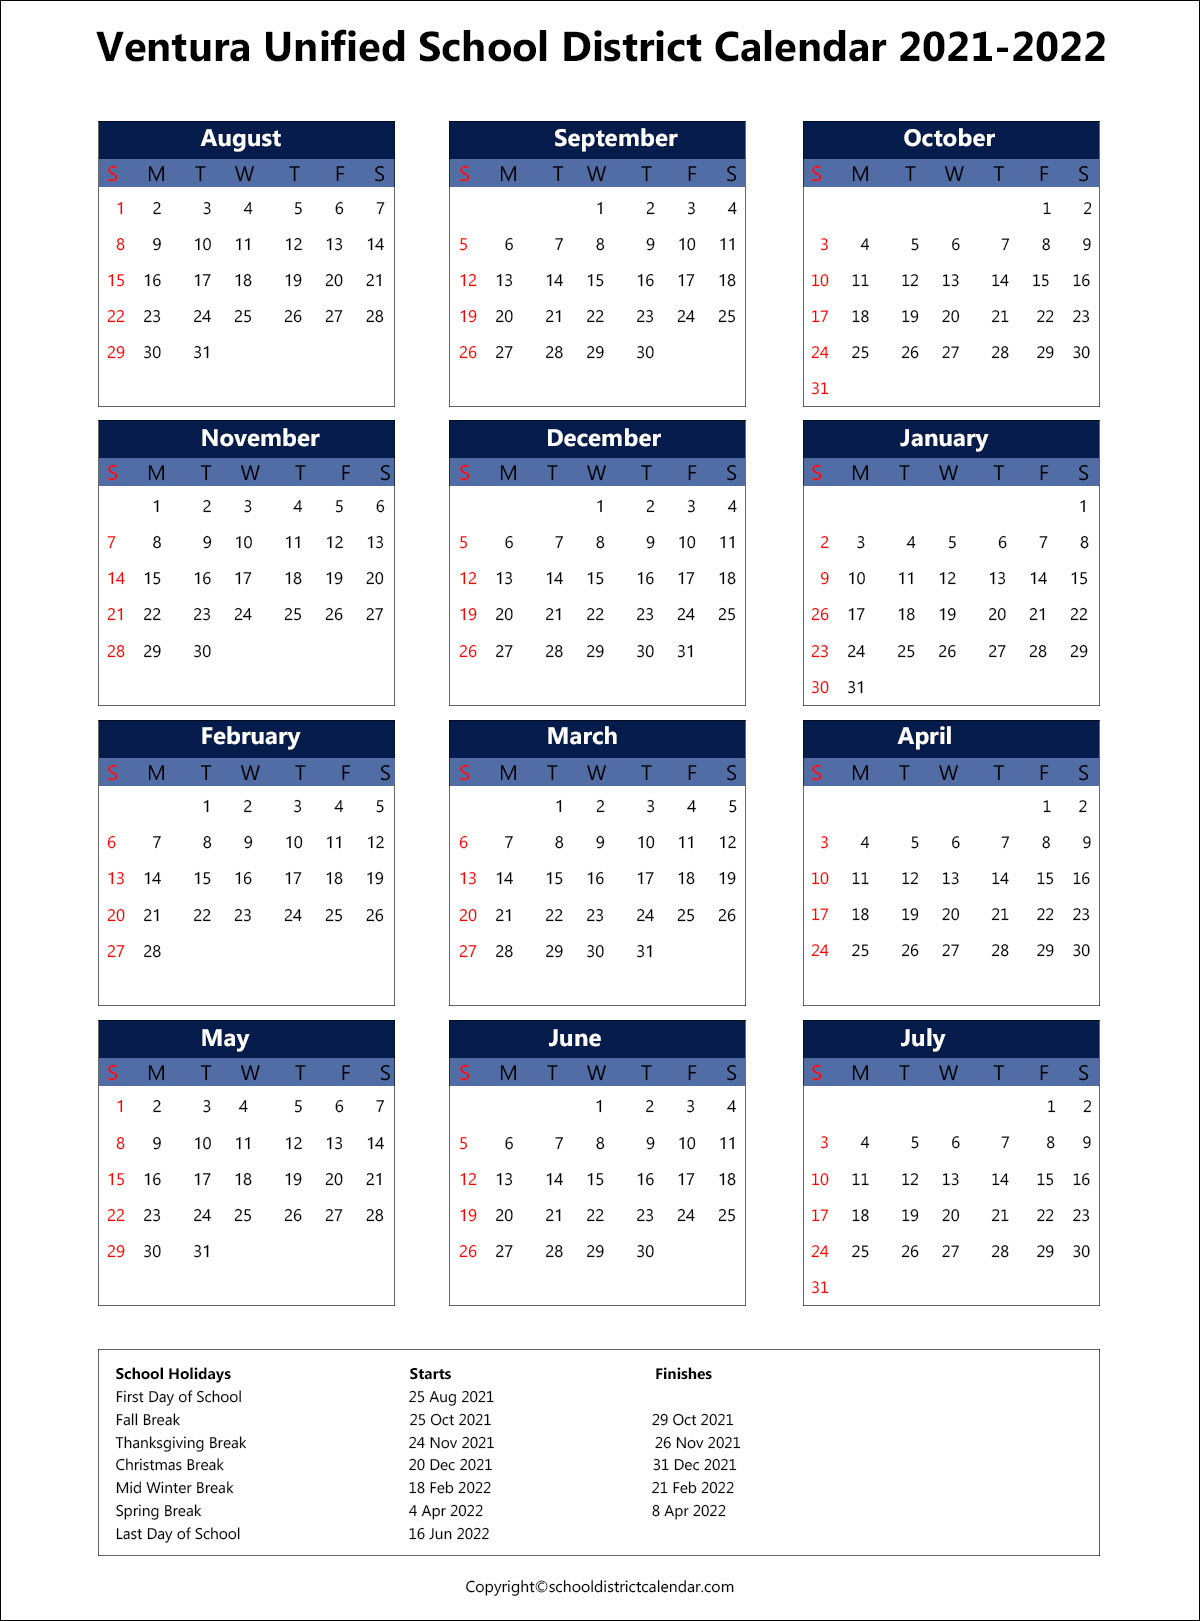 Ventura Unified School District Calendar 2021